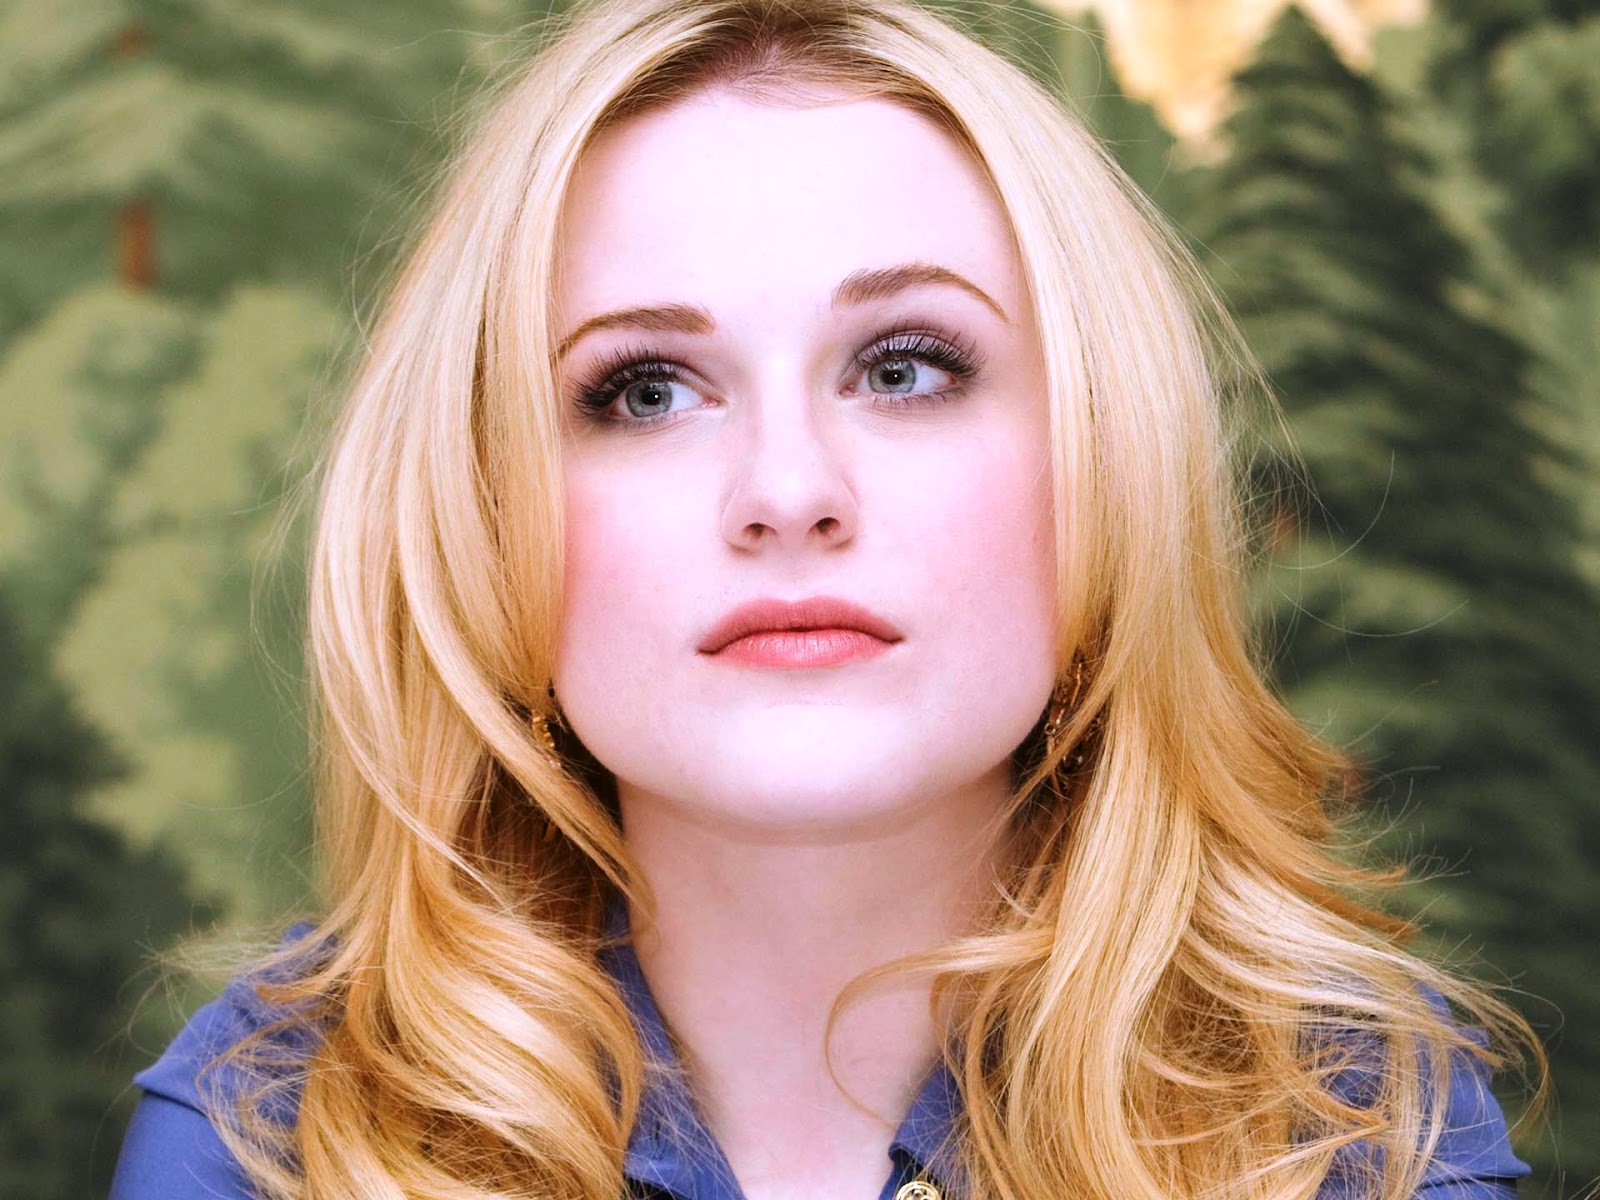 http://1.bp.blogspot.com/-xoIJQqa3iFk/TqGVBst-YVI/AAAAAAAAEvs/nT49A9qEJc0/s1600/kaneda_Evan_Rachel_Wood_Mildred+Pierce+Press+Conference_+%252812%2529.jpg